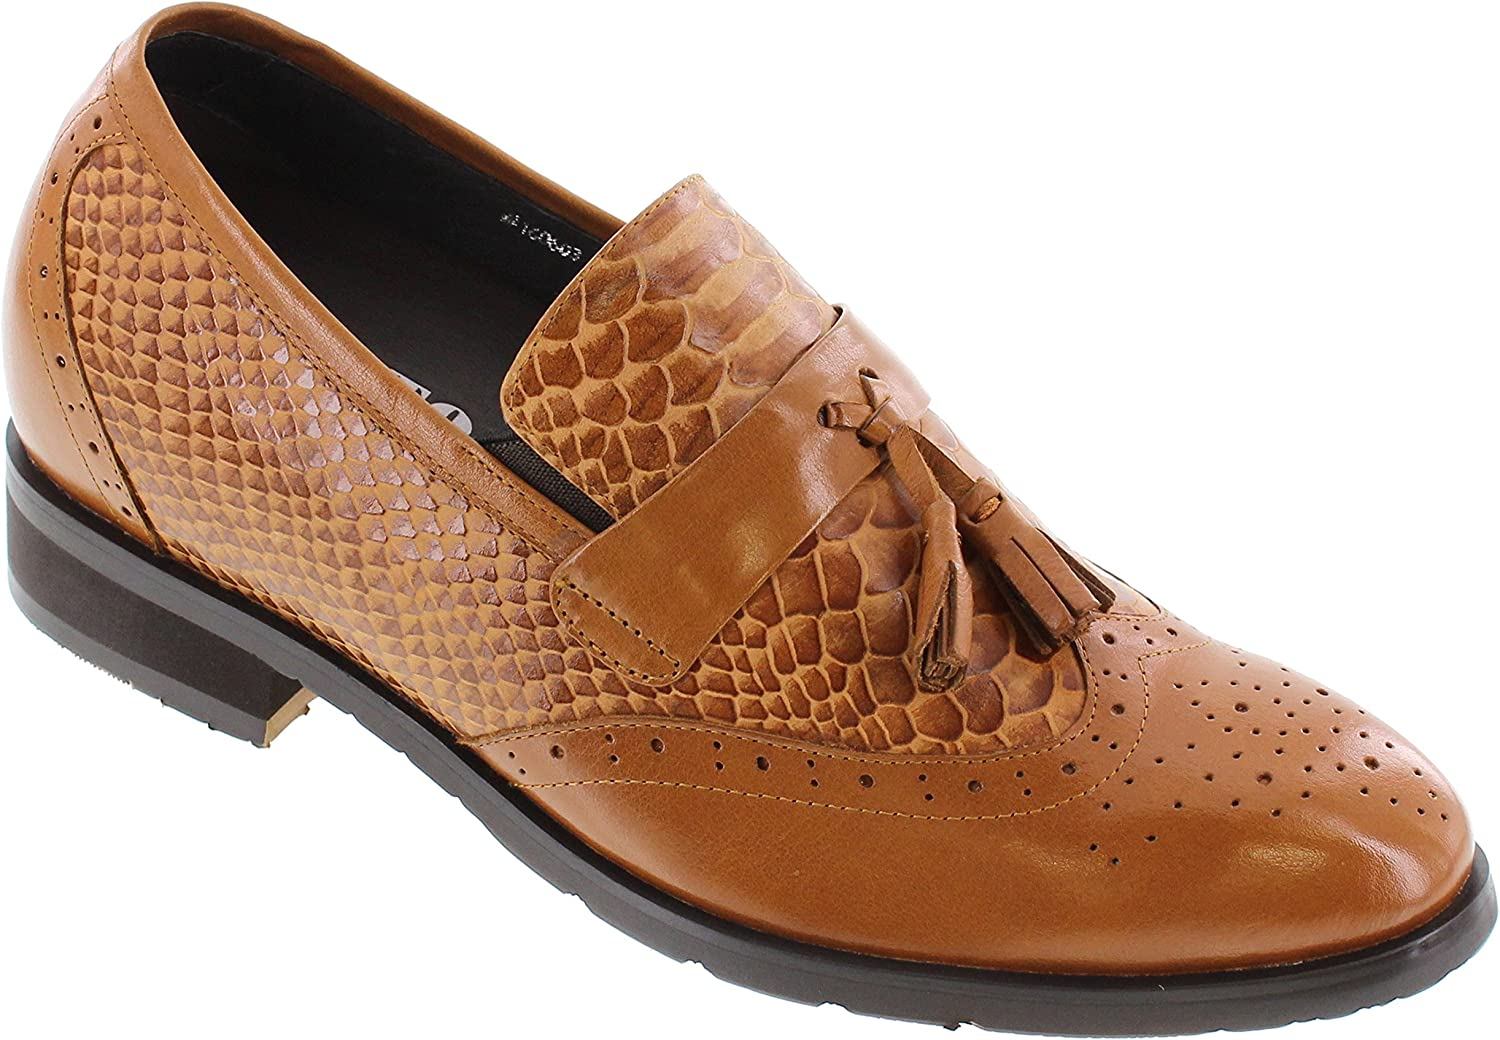 TOTO Men's Invisible Height Increasing Shoes Tw Elevator Fresno store Mall - Brown